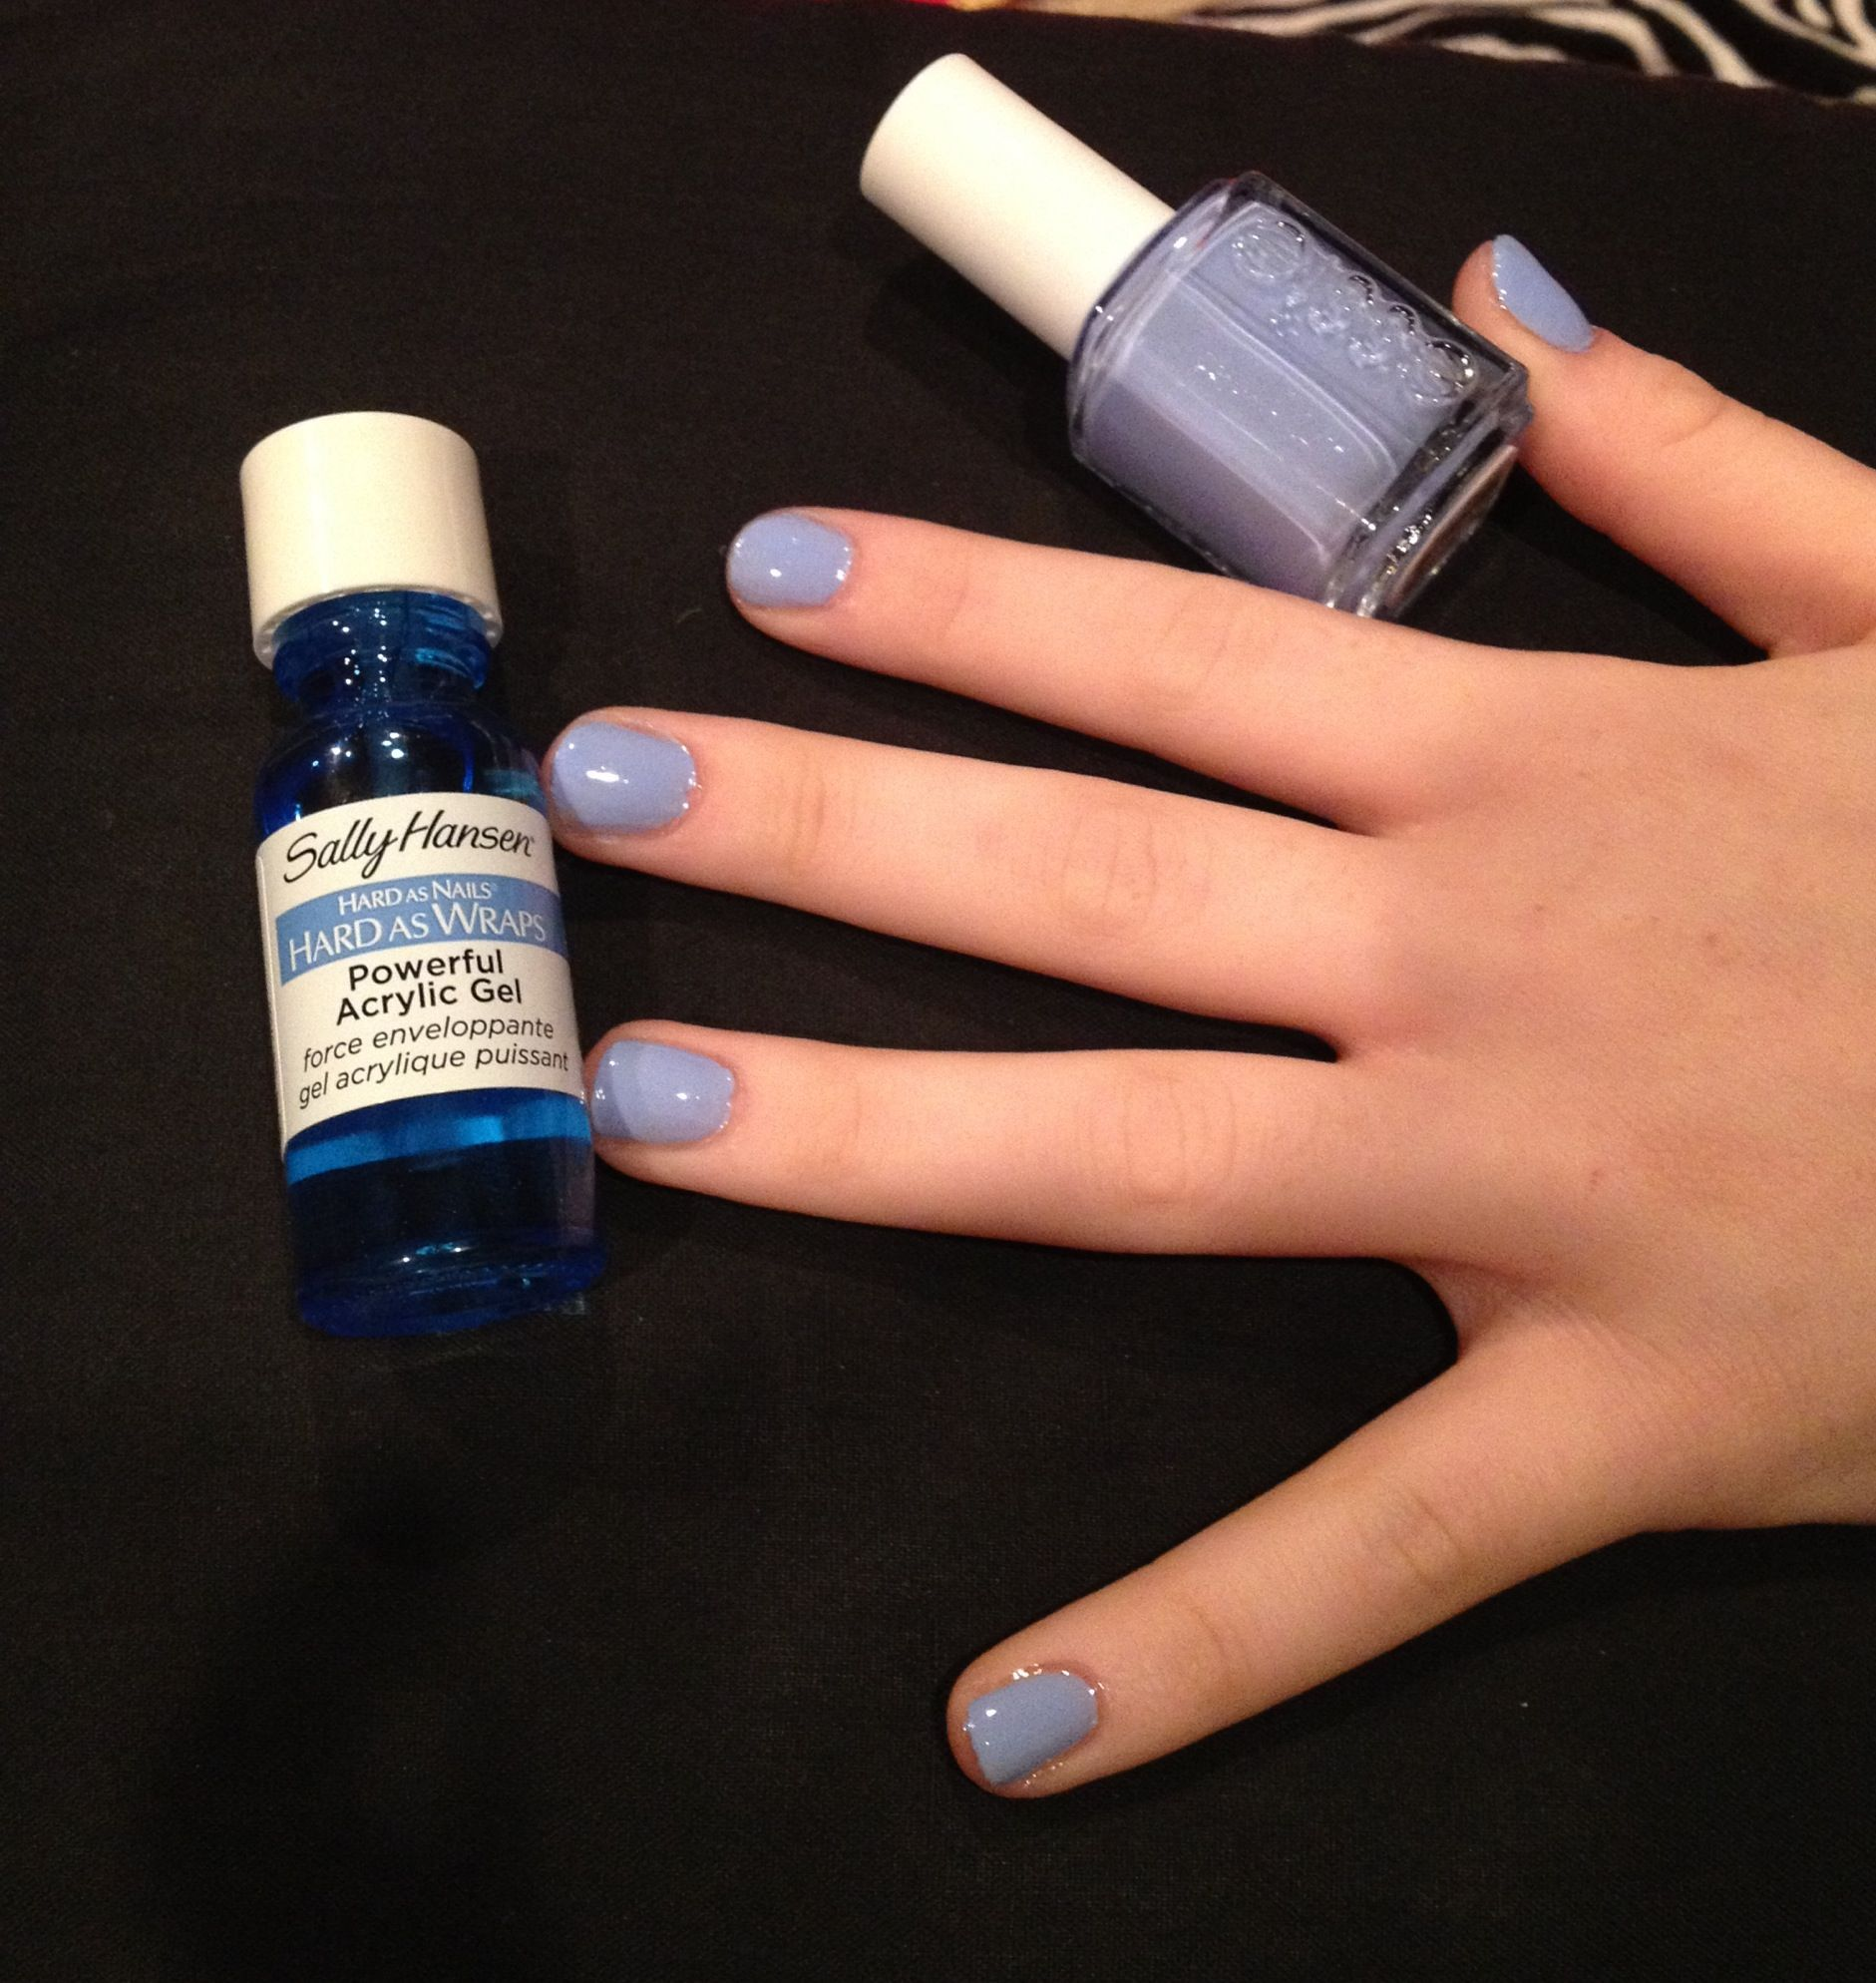 At home shellac: Sally Hansen Hard as Nails Hard as Wraps Powerful ...